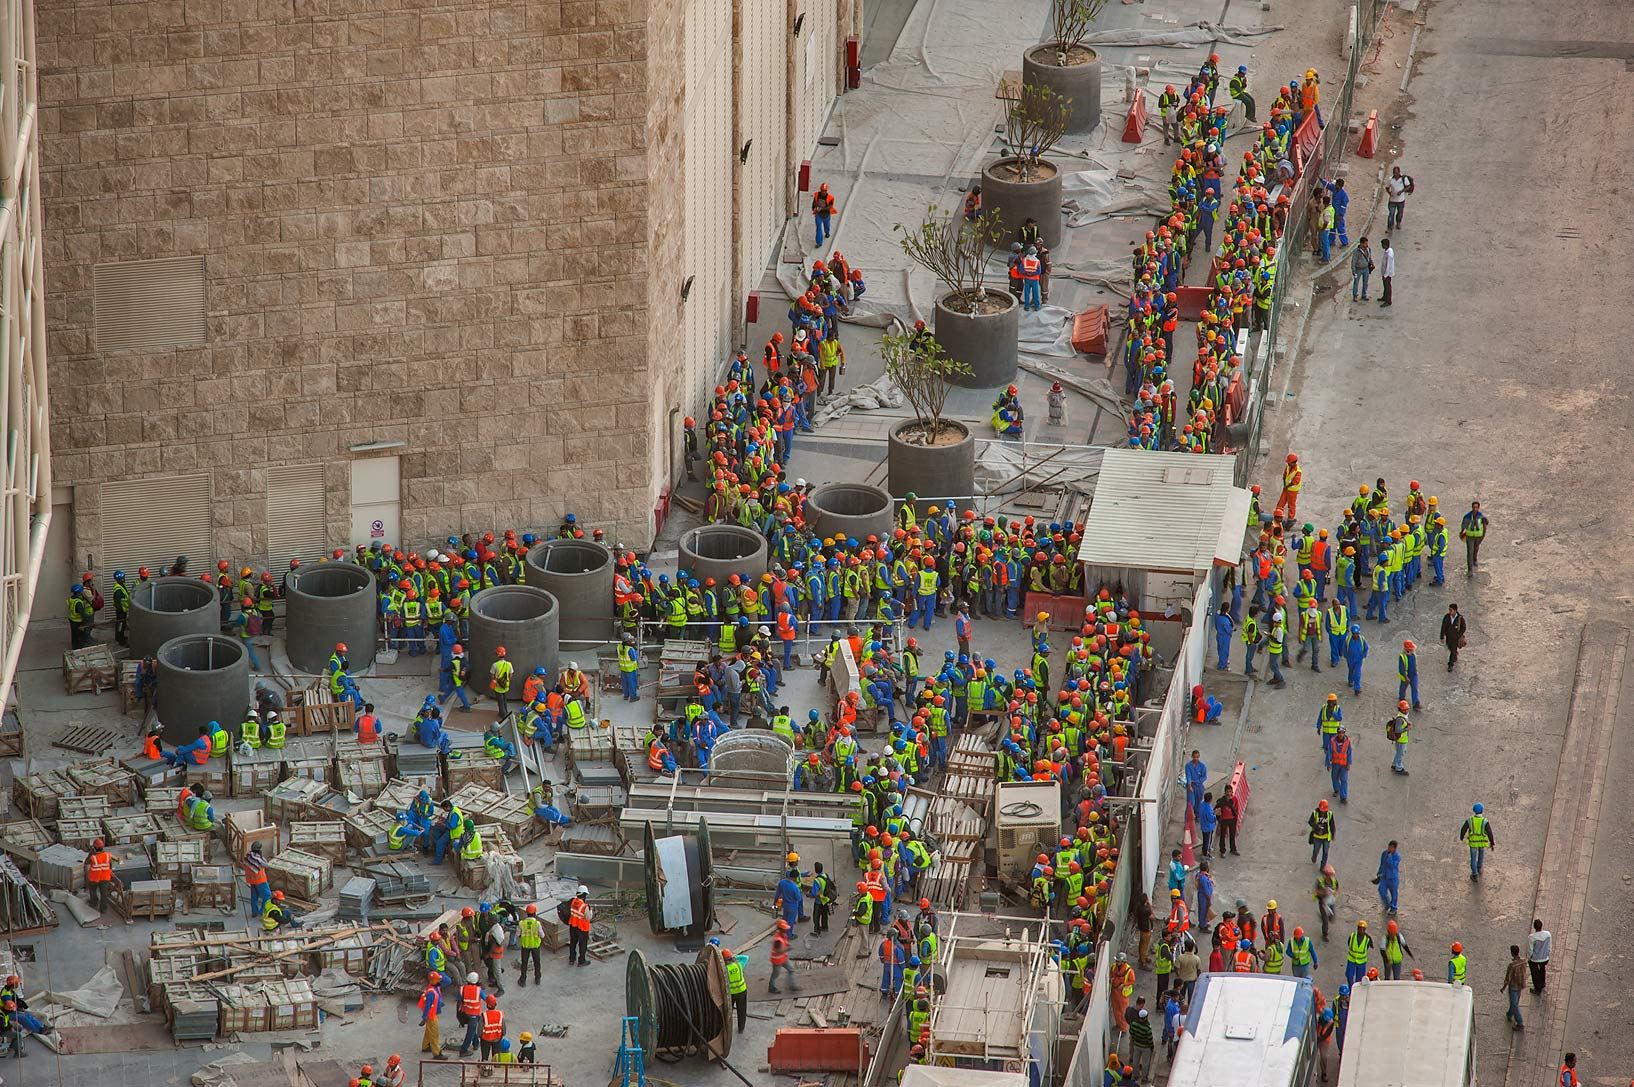 Workers exiting from construction of Qatar...1-2244 of Ezdan Hotel. Doha, Qatar